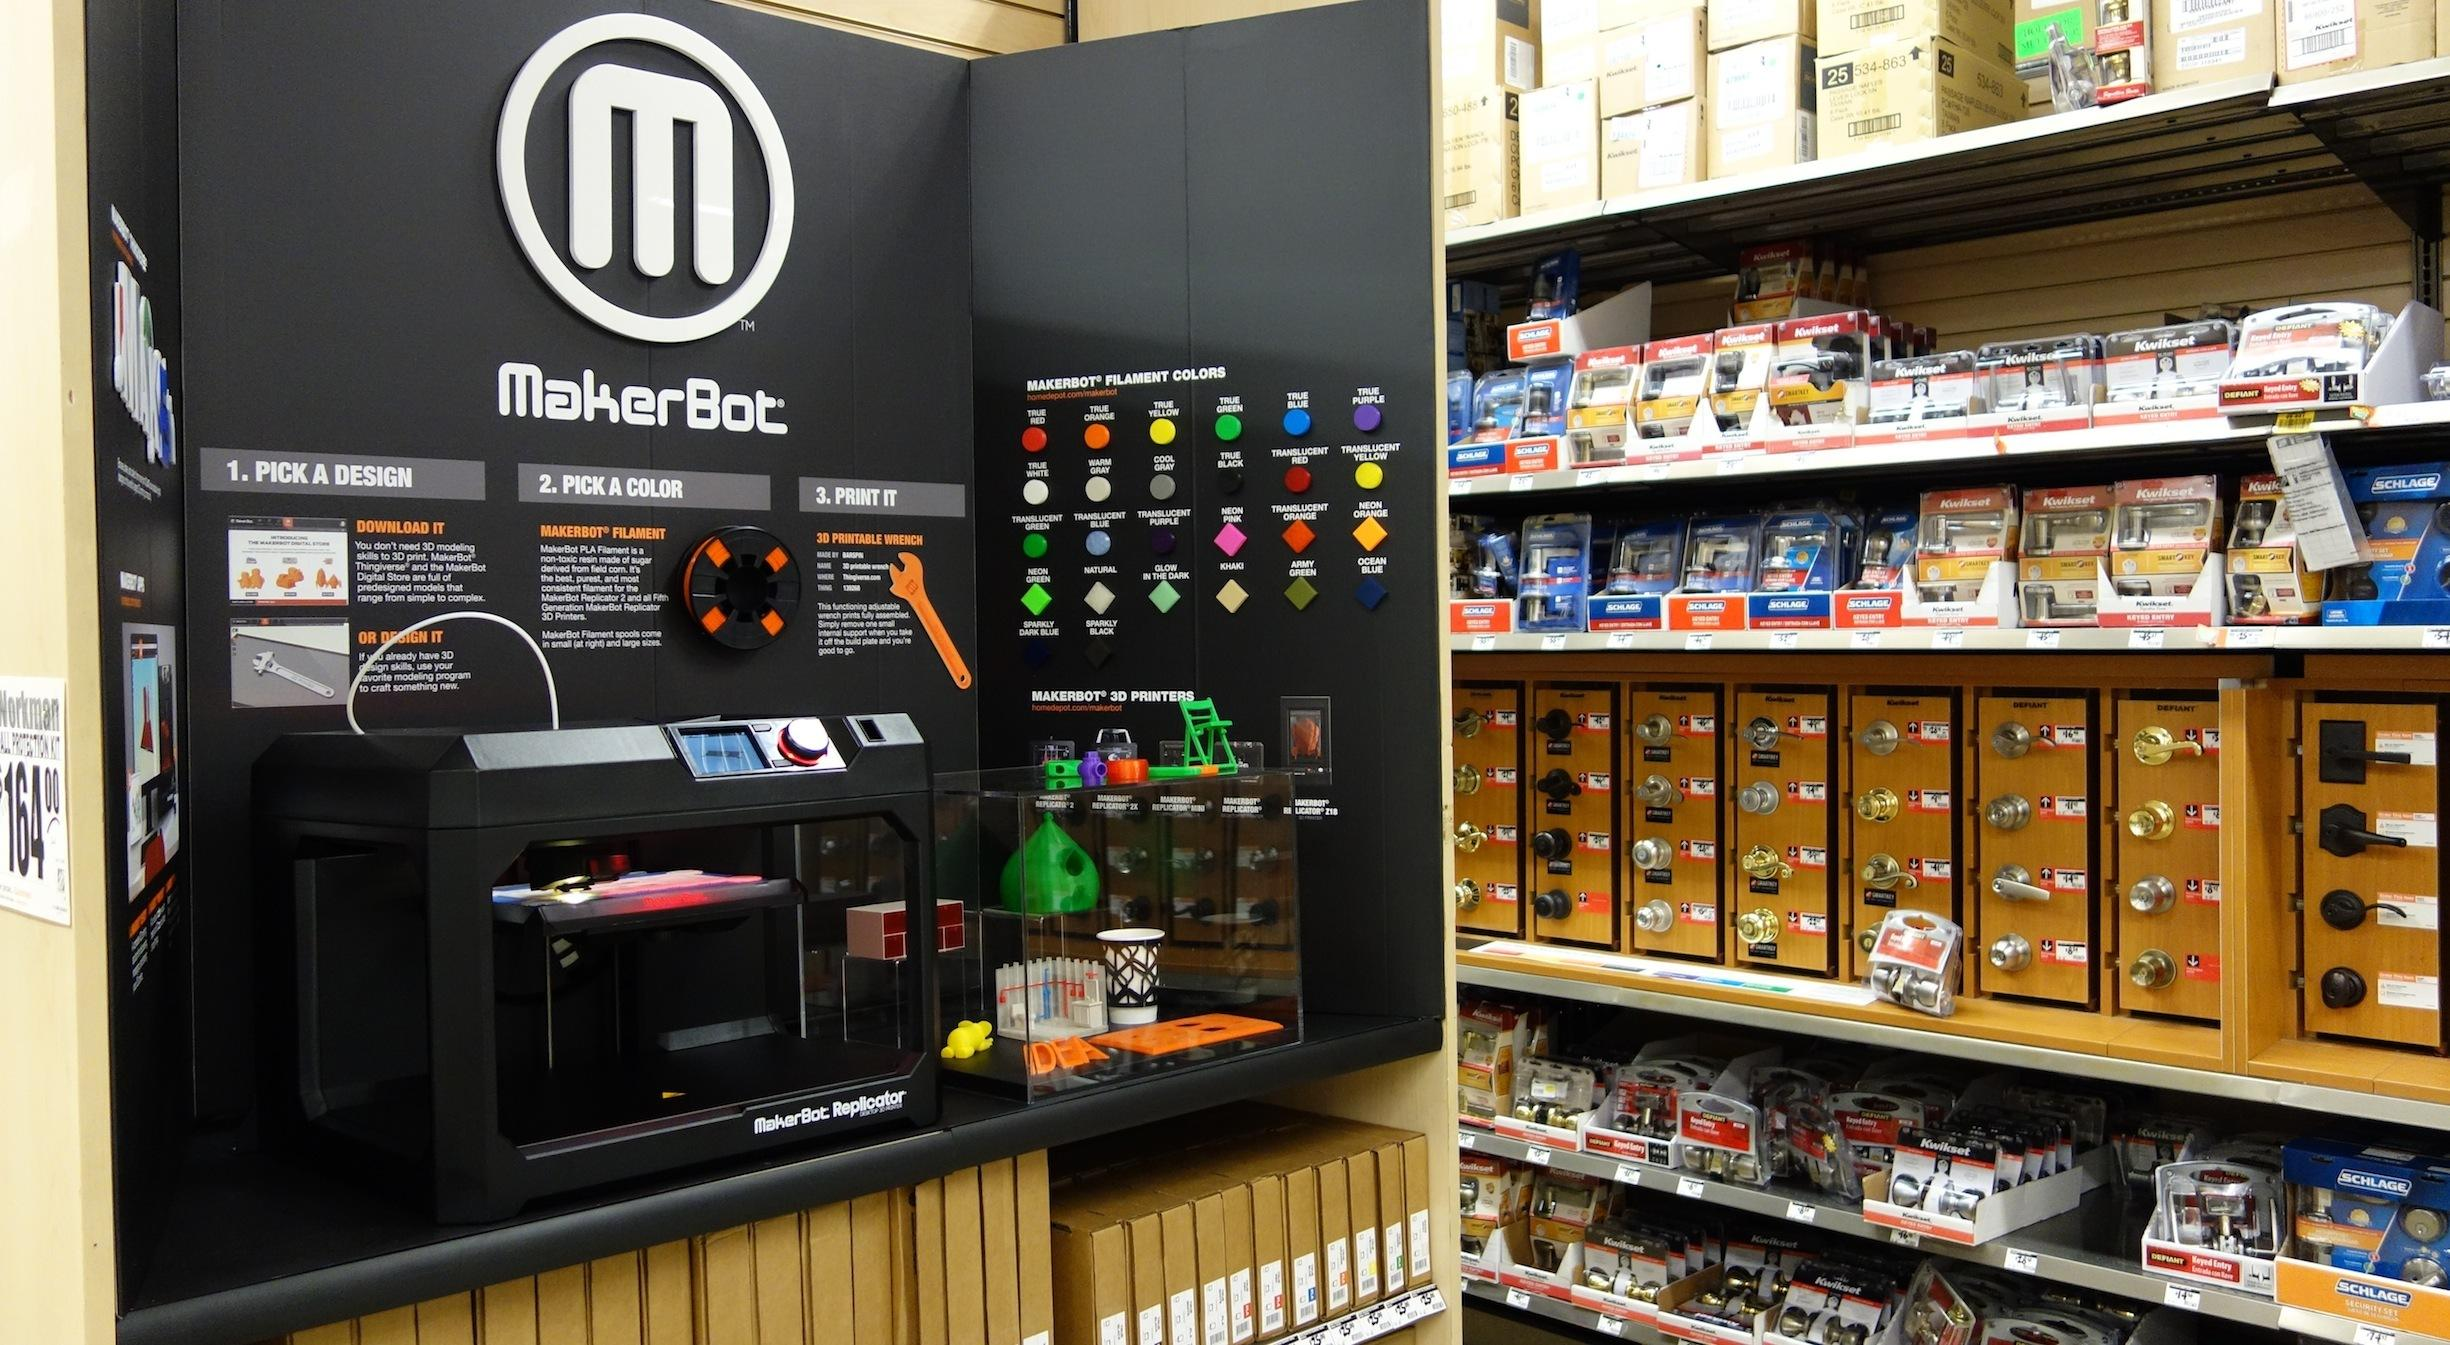 Home Depot and MakerBot to Expand Their In-Store Pilot Program to 39 Stores Total in U.S.